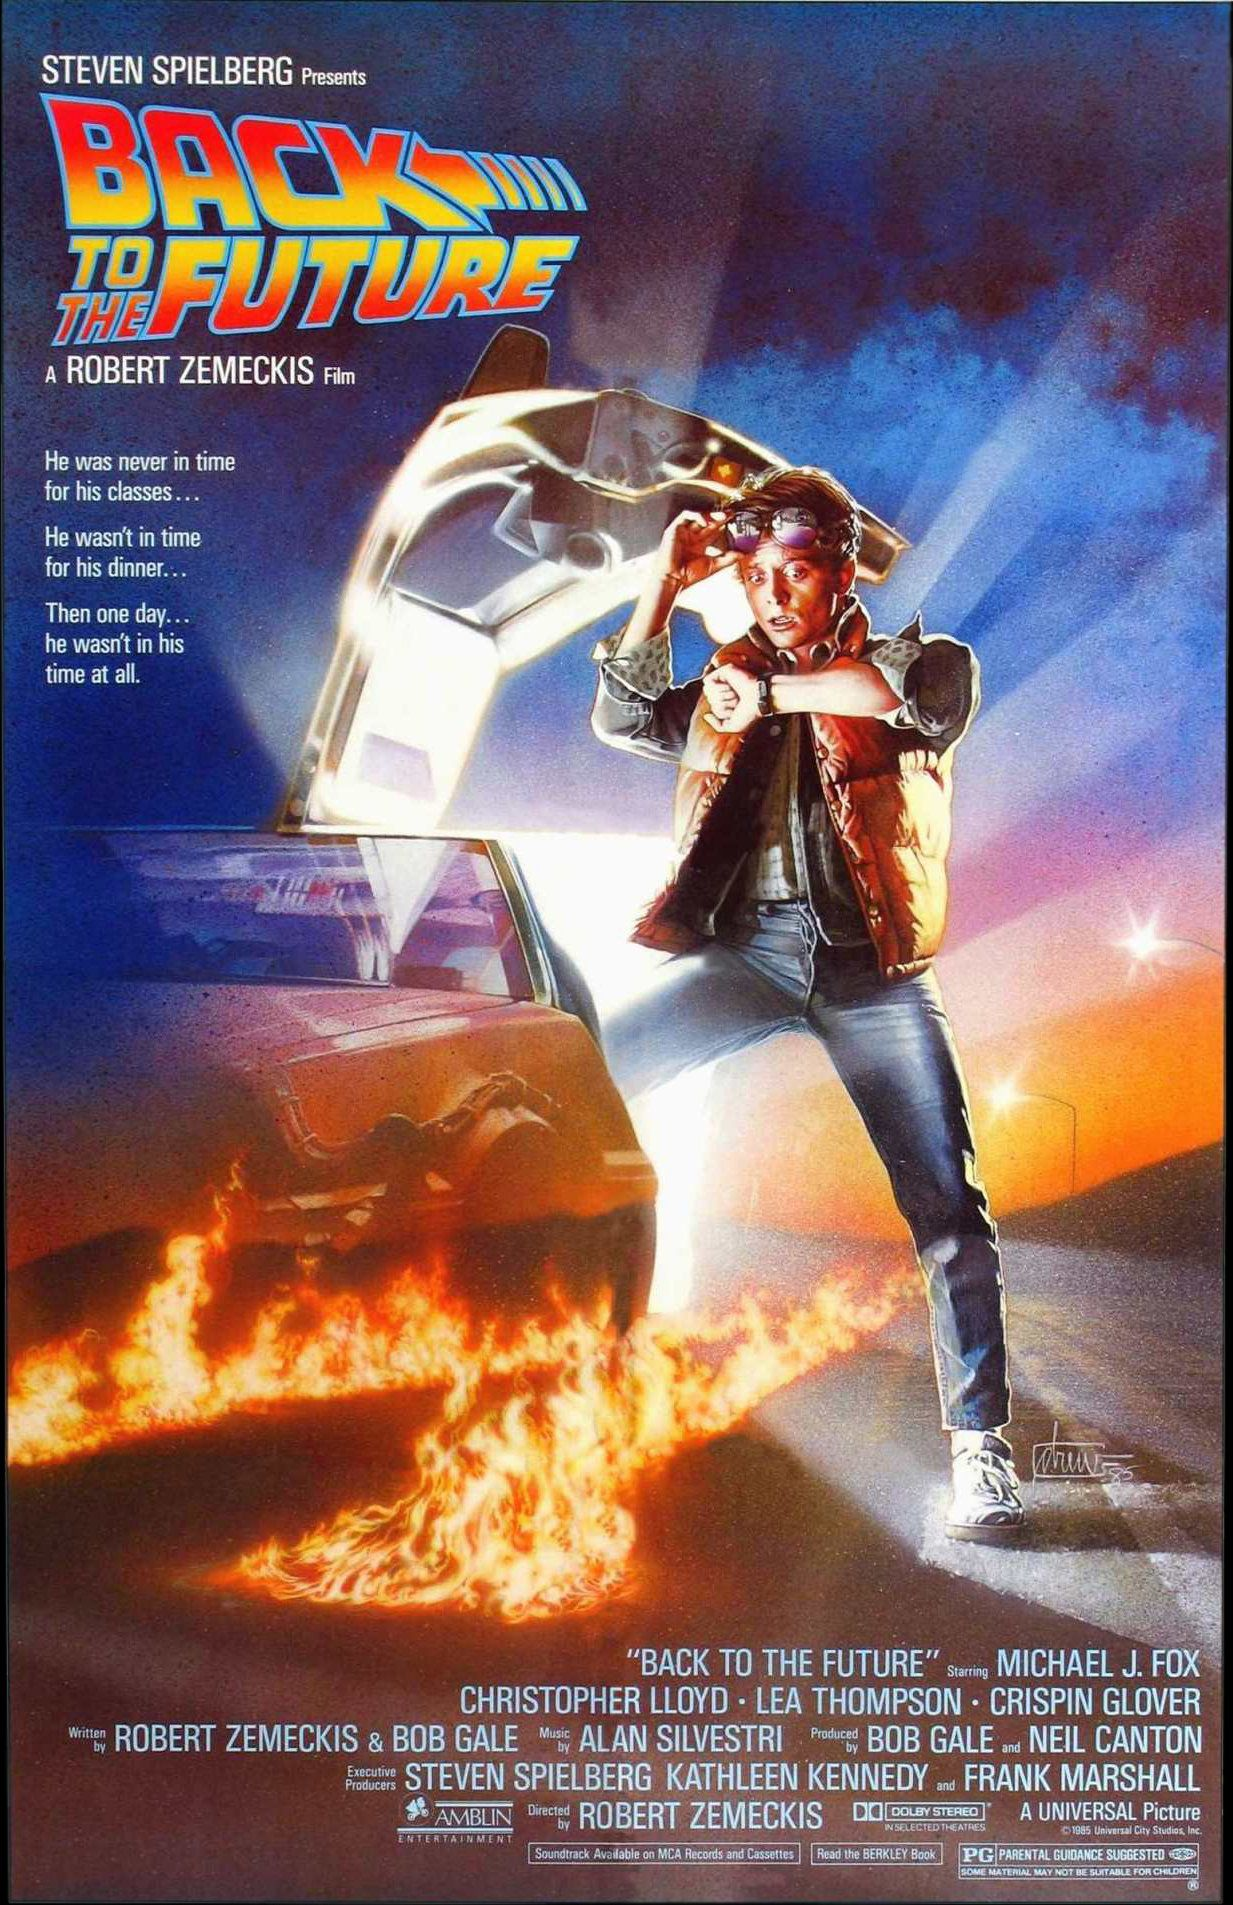 Back to the future (1985) by Robert Zemeckis - 1985